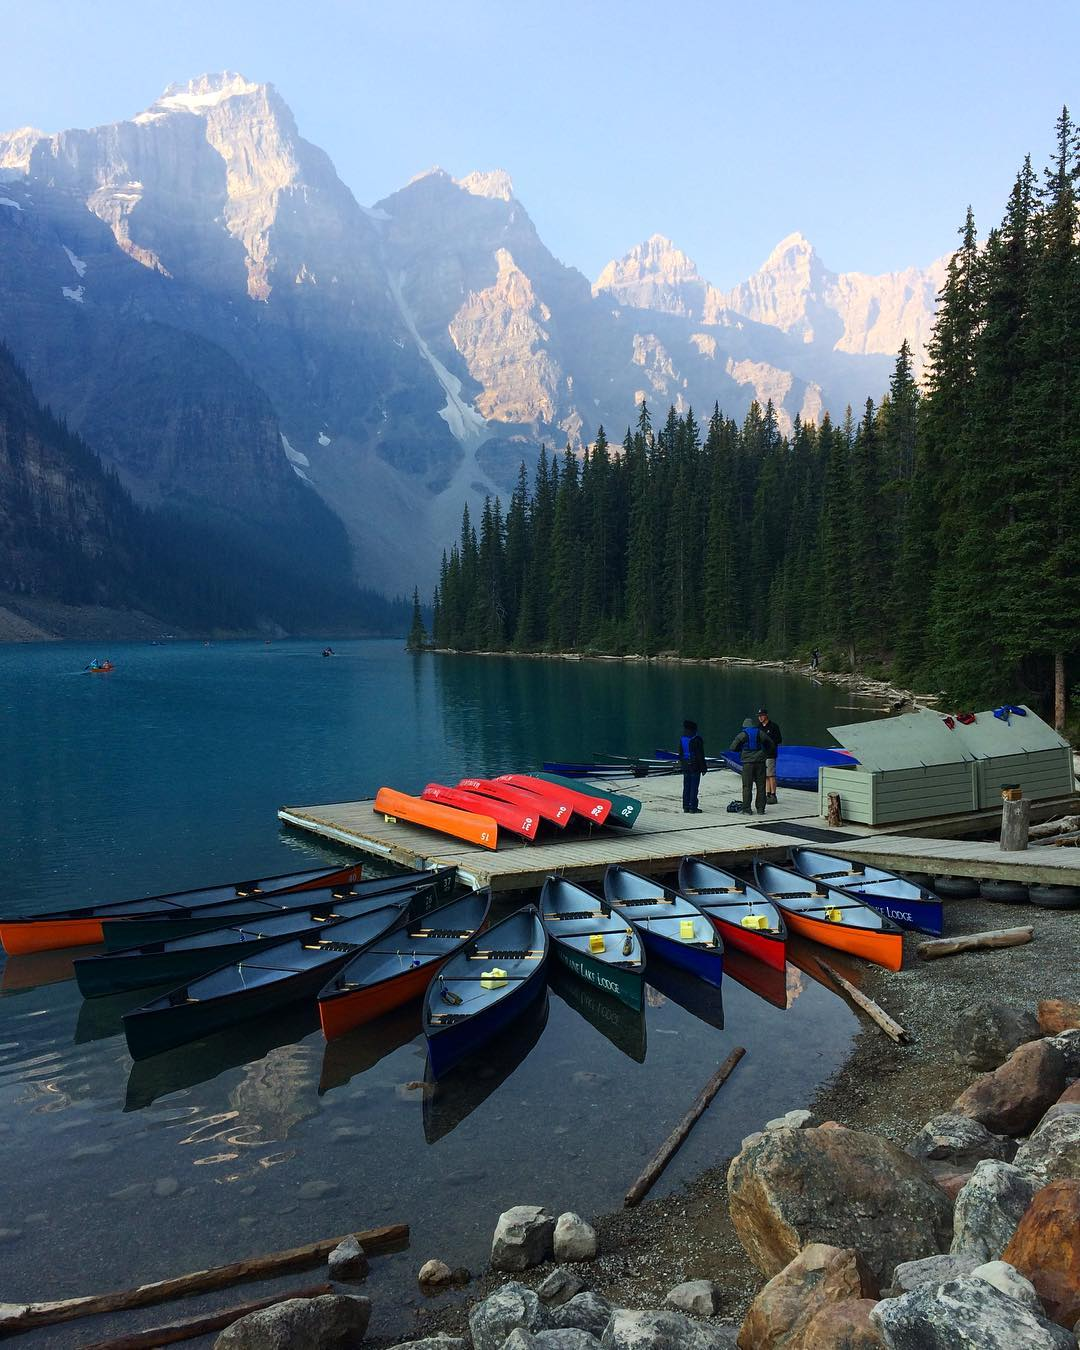 Almost a dozen kayaks are lined around a dock by Moraine Lake nestled among snow capped peaks and forests